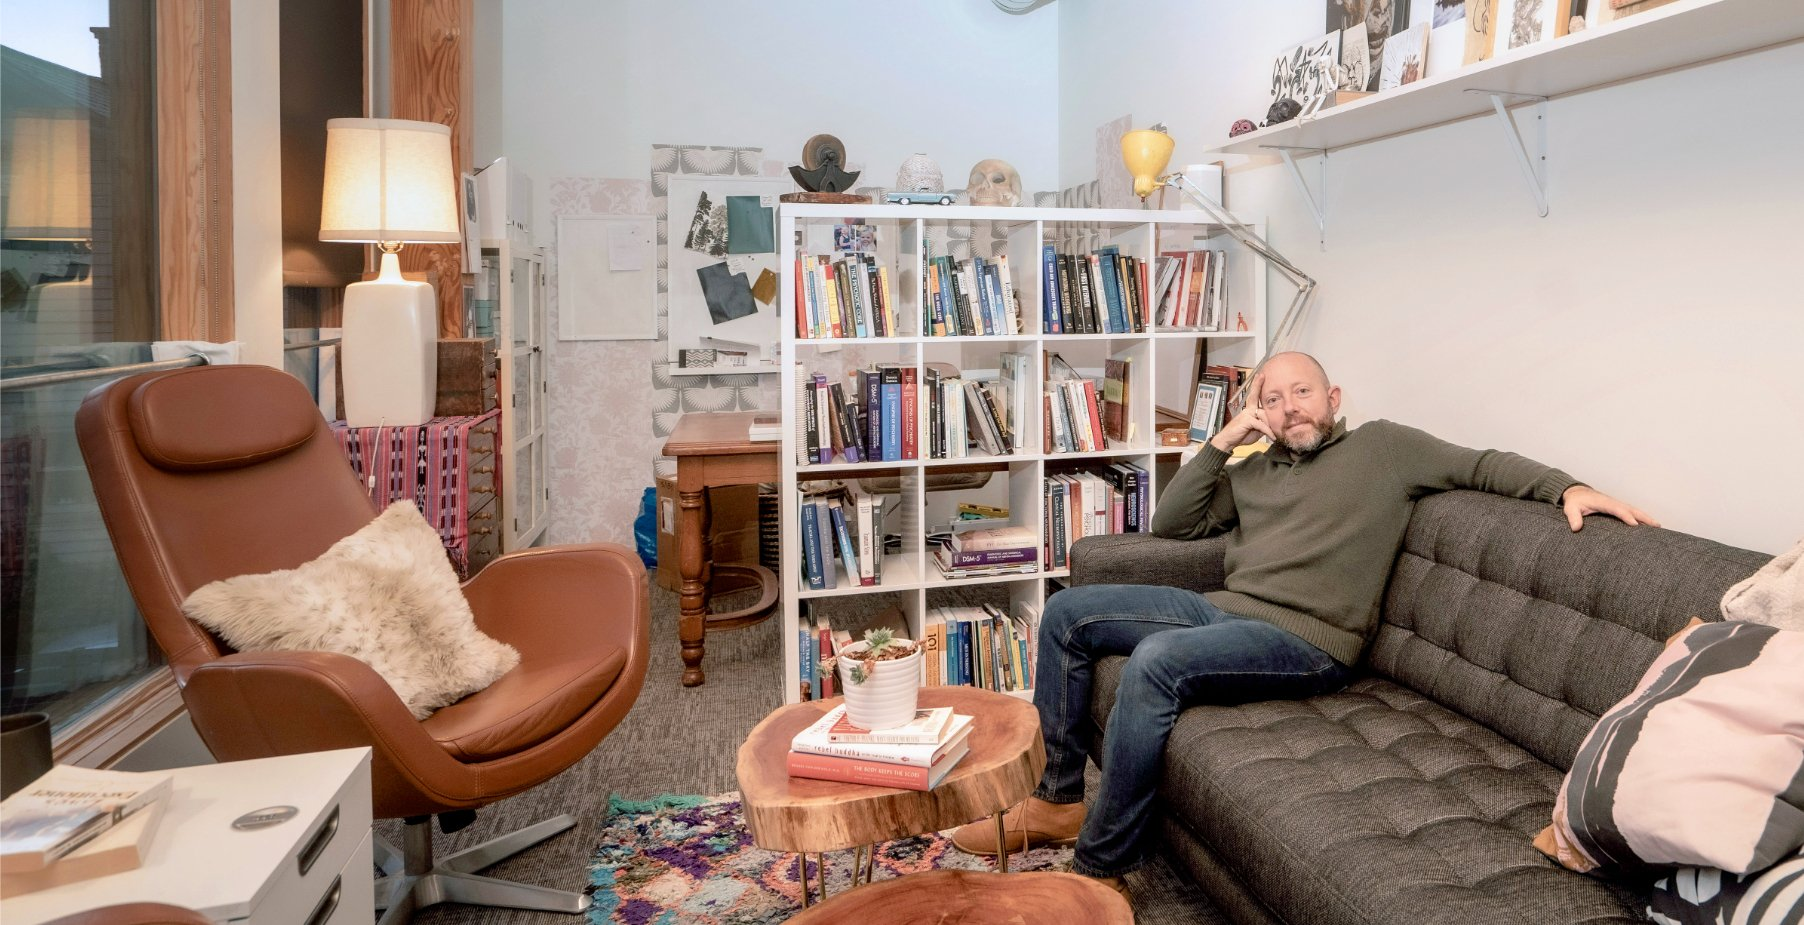 A landscape photo of Dr.Jake in his office. He sits patiently on a comfortable couch. A large shelf stands prominently out from the wall, each cubby host of a variety of books, thick and thin. Oddities and curiosities lay about the room on shelves and tables. The overall atmosphere of this space is friendly, relaxed, and a bit quirky.